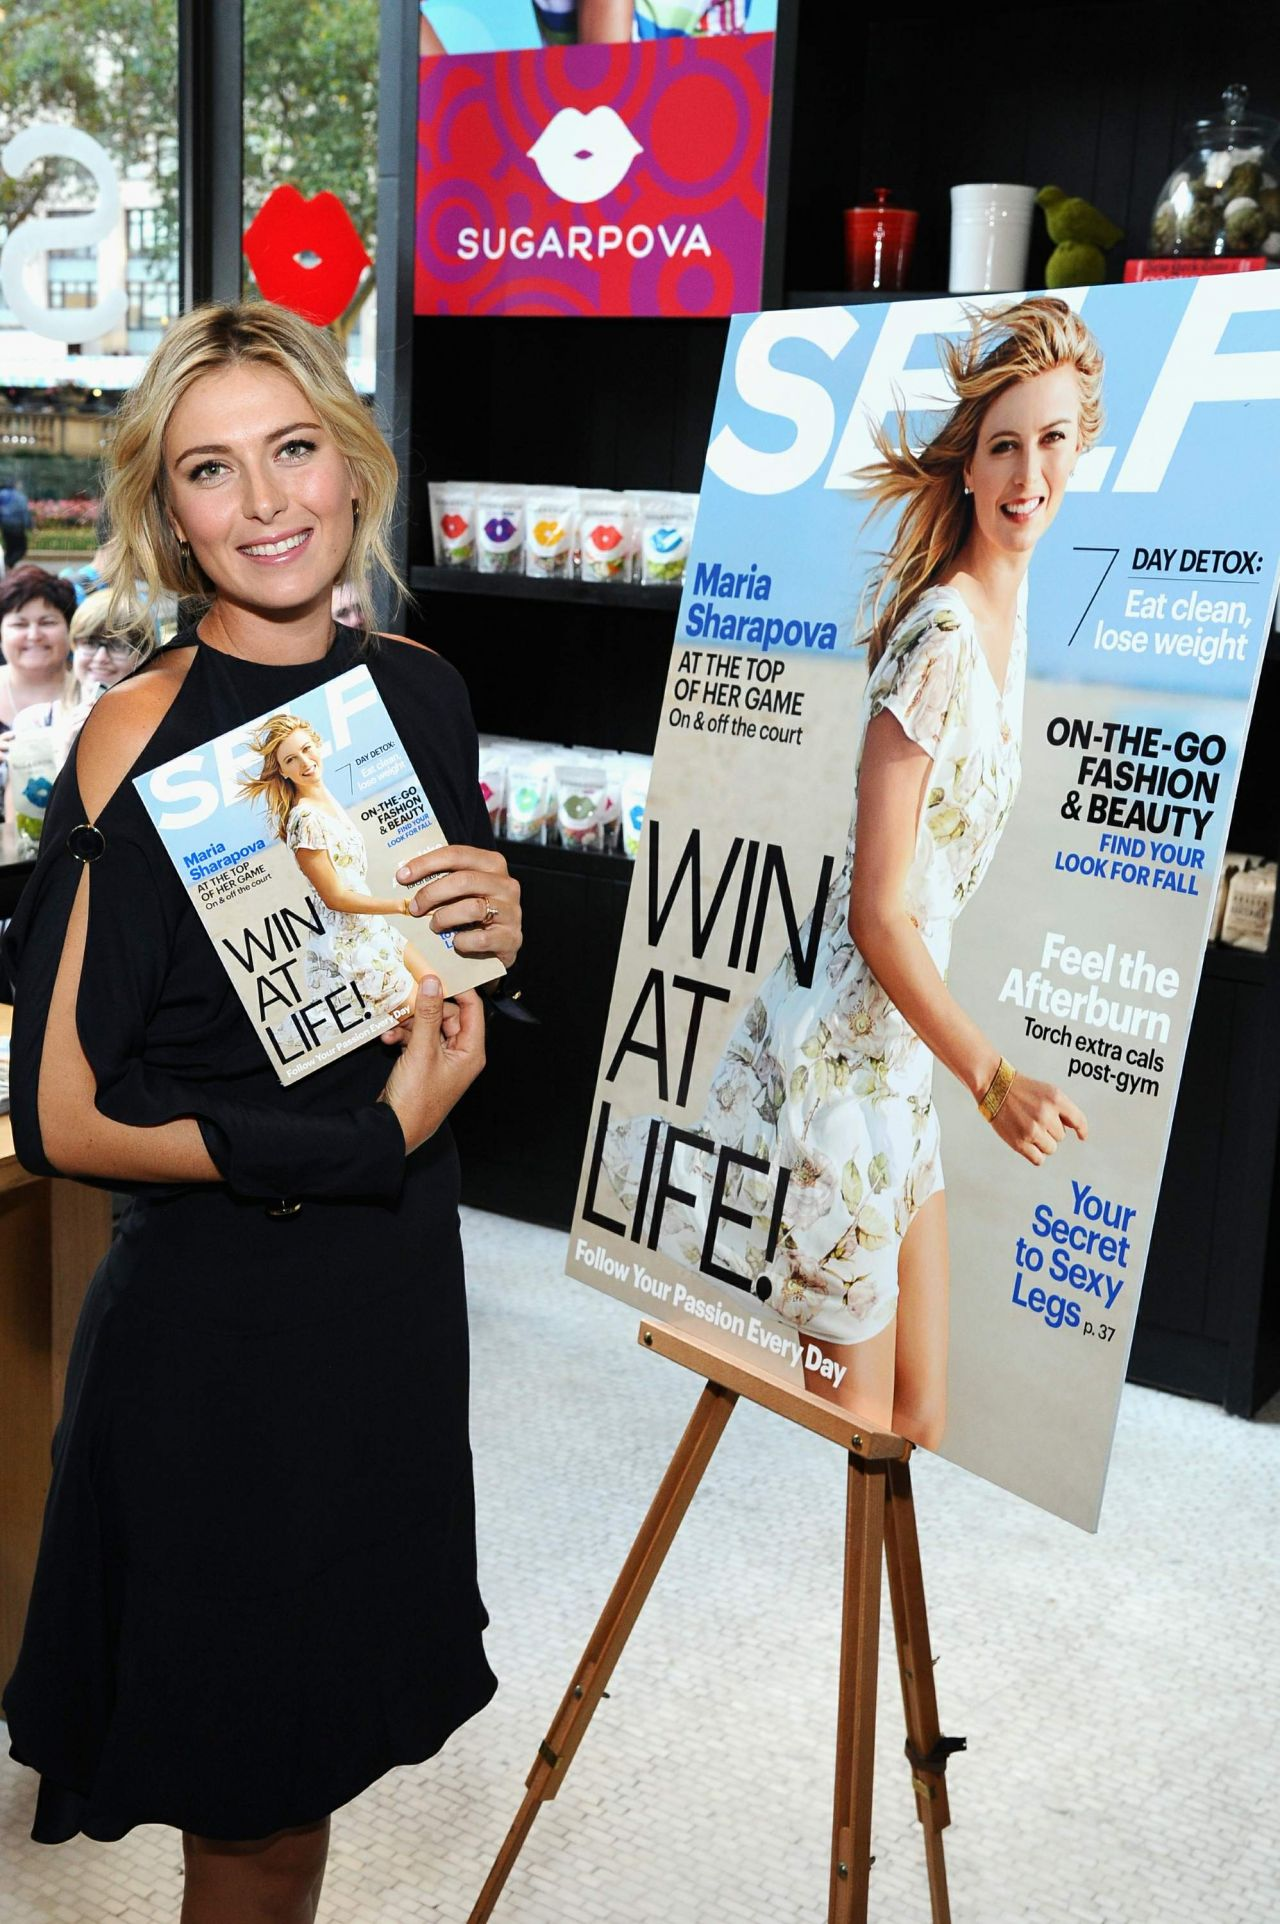 Maria Sharapova - SELF Made Woman Q&A Event - August 2014